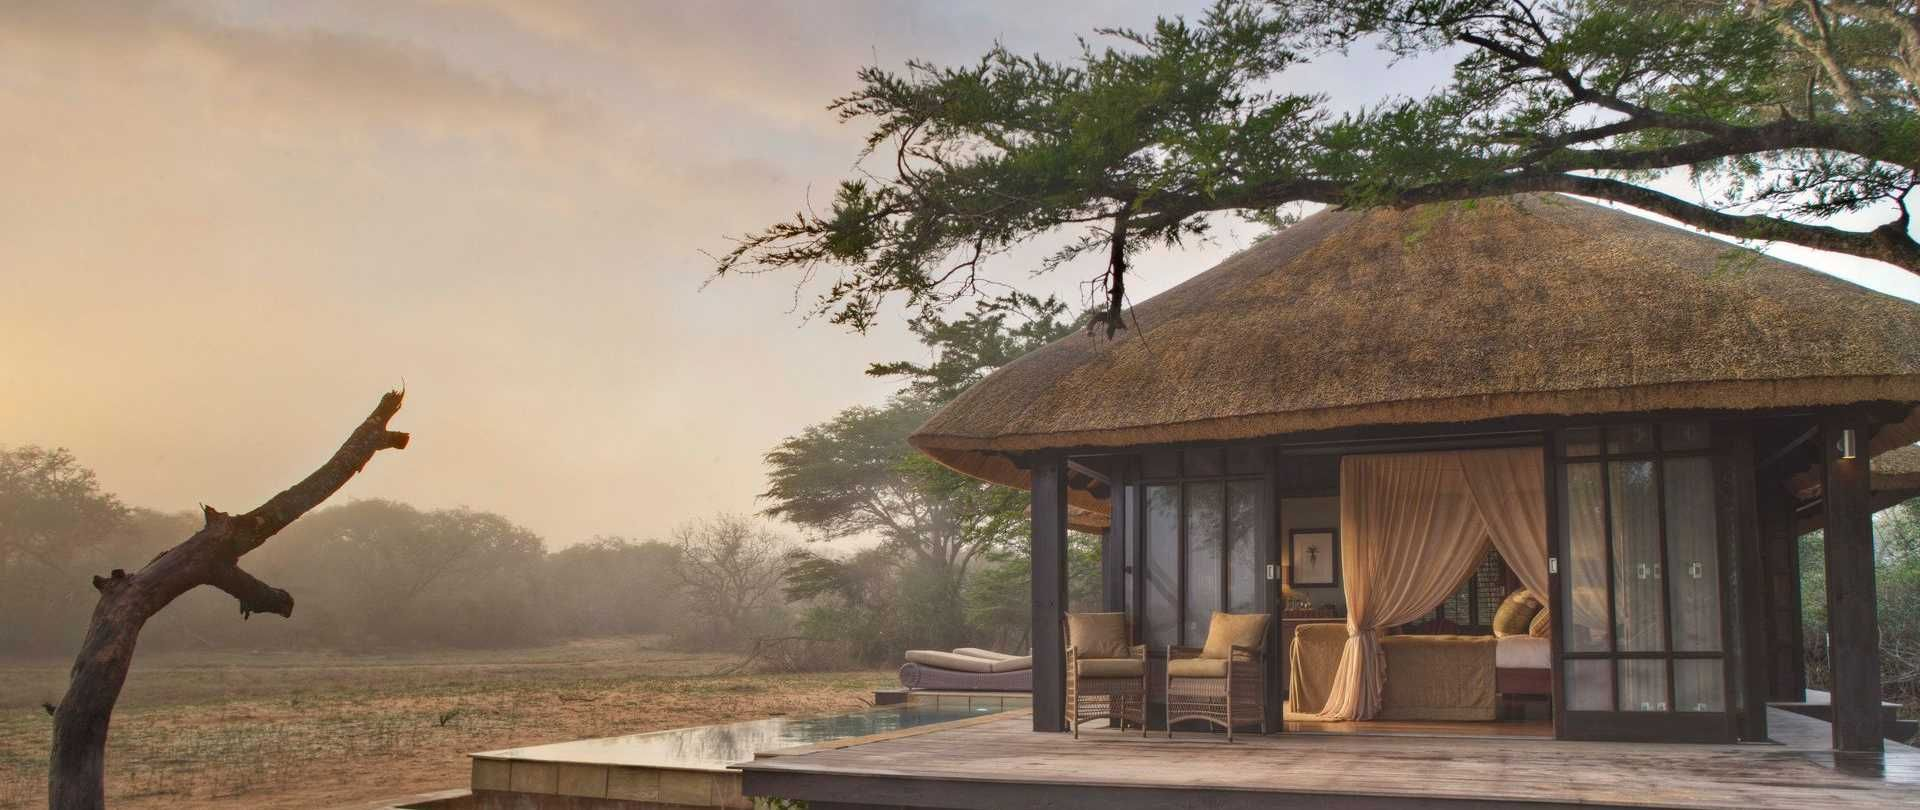 andBeyond Phinda Vlei Lodge Cool places to visit, Luxury